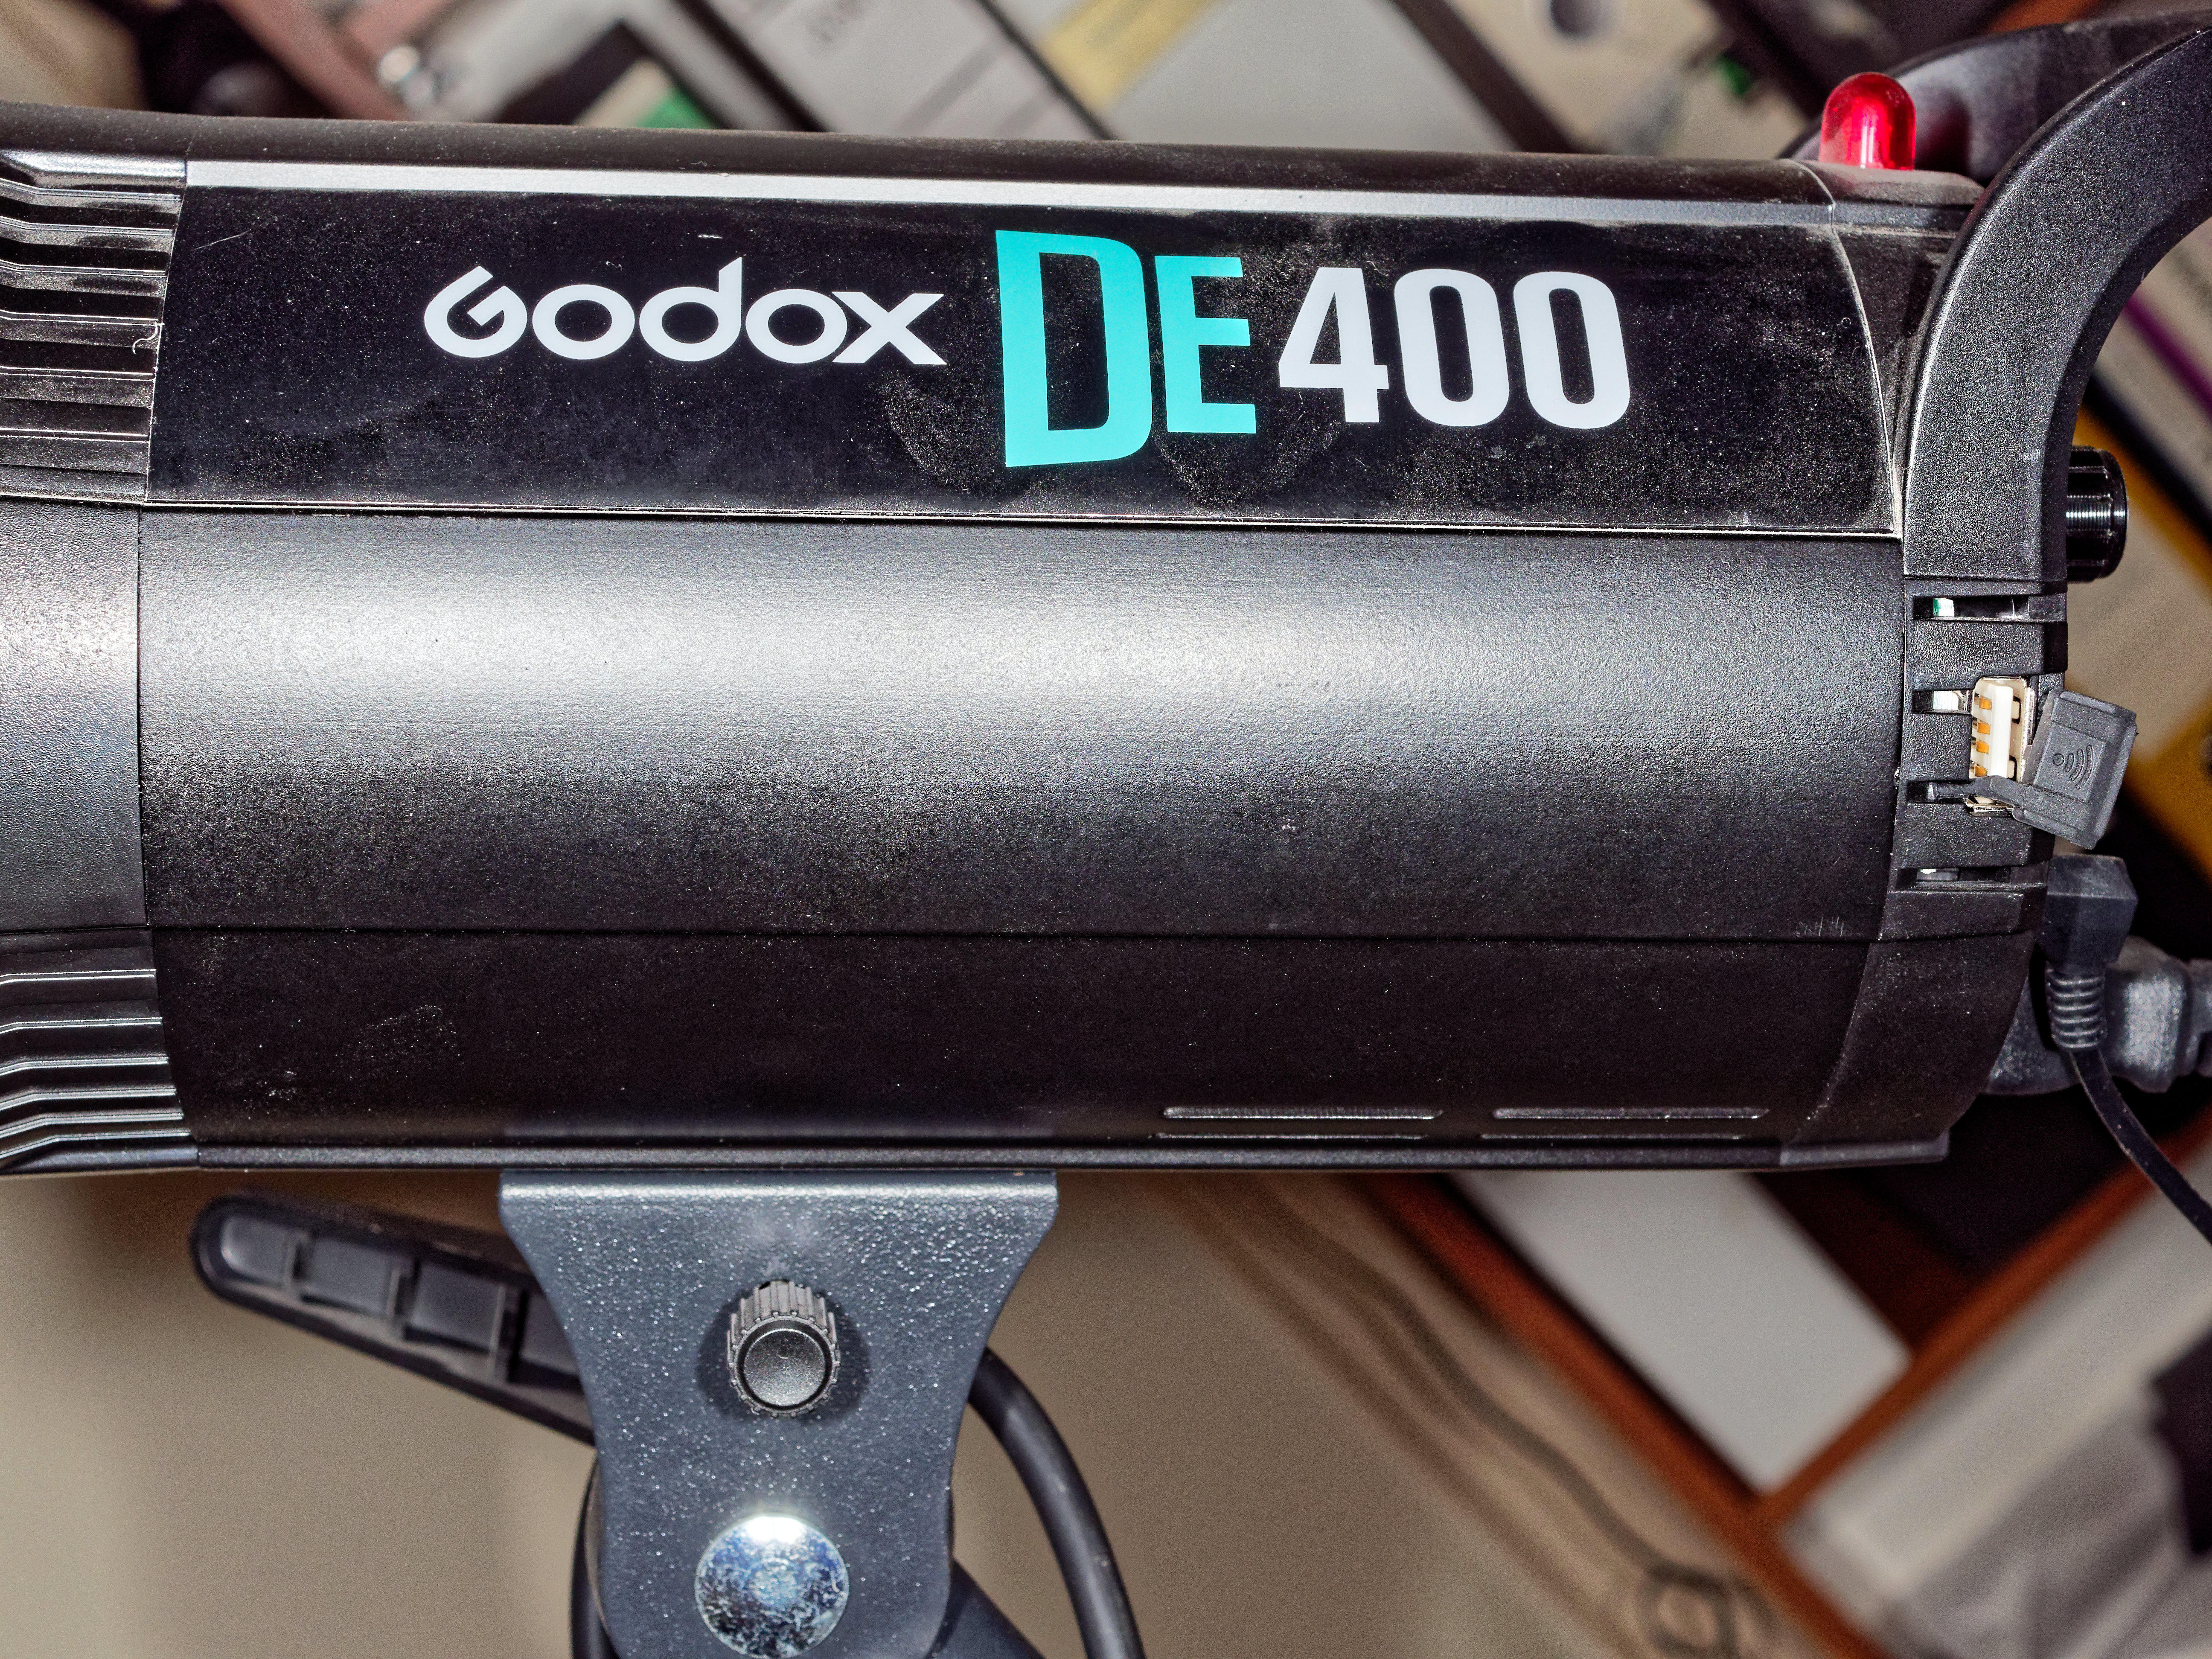 This should be Godox-DE400-2.jpeg.  Is it missing?